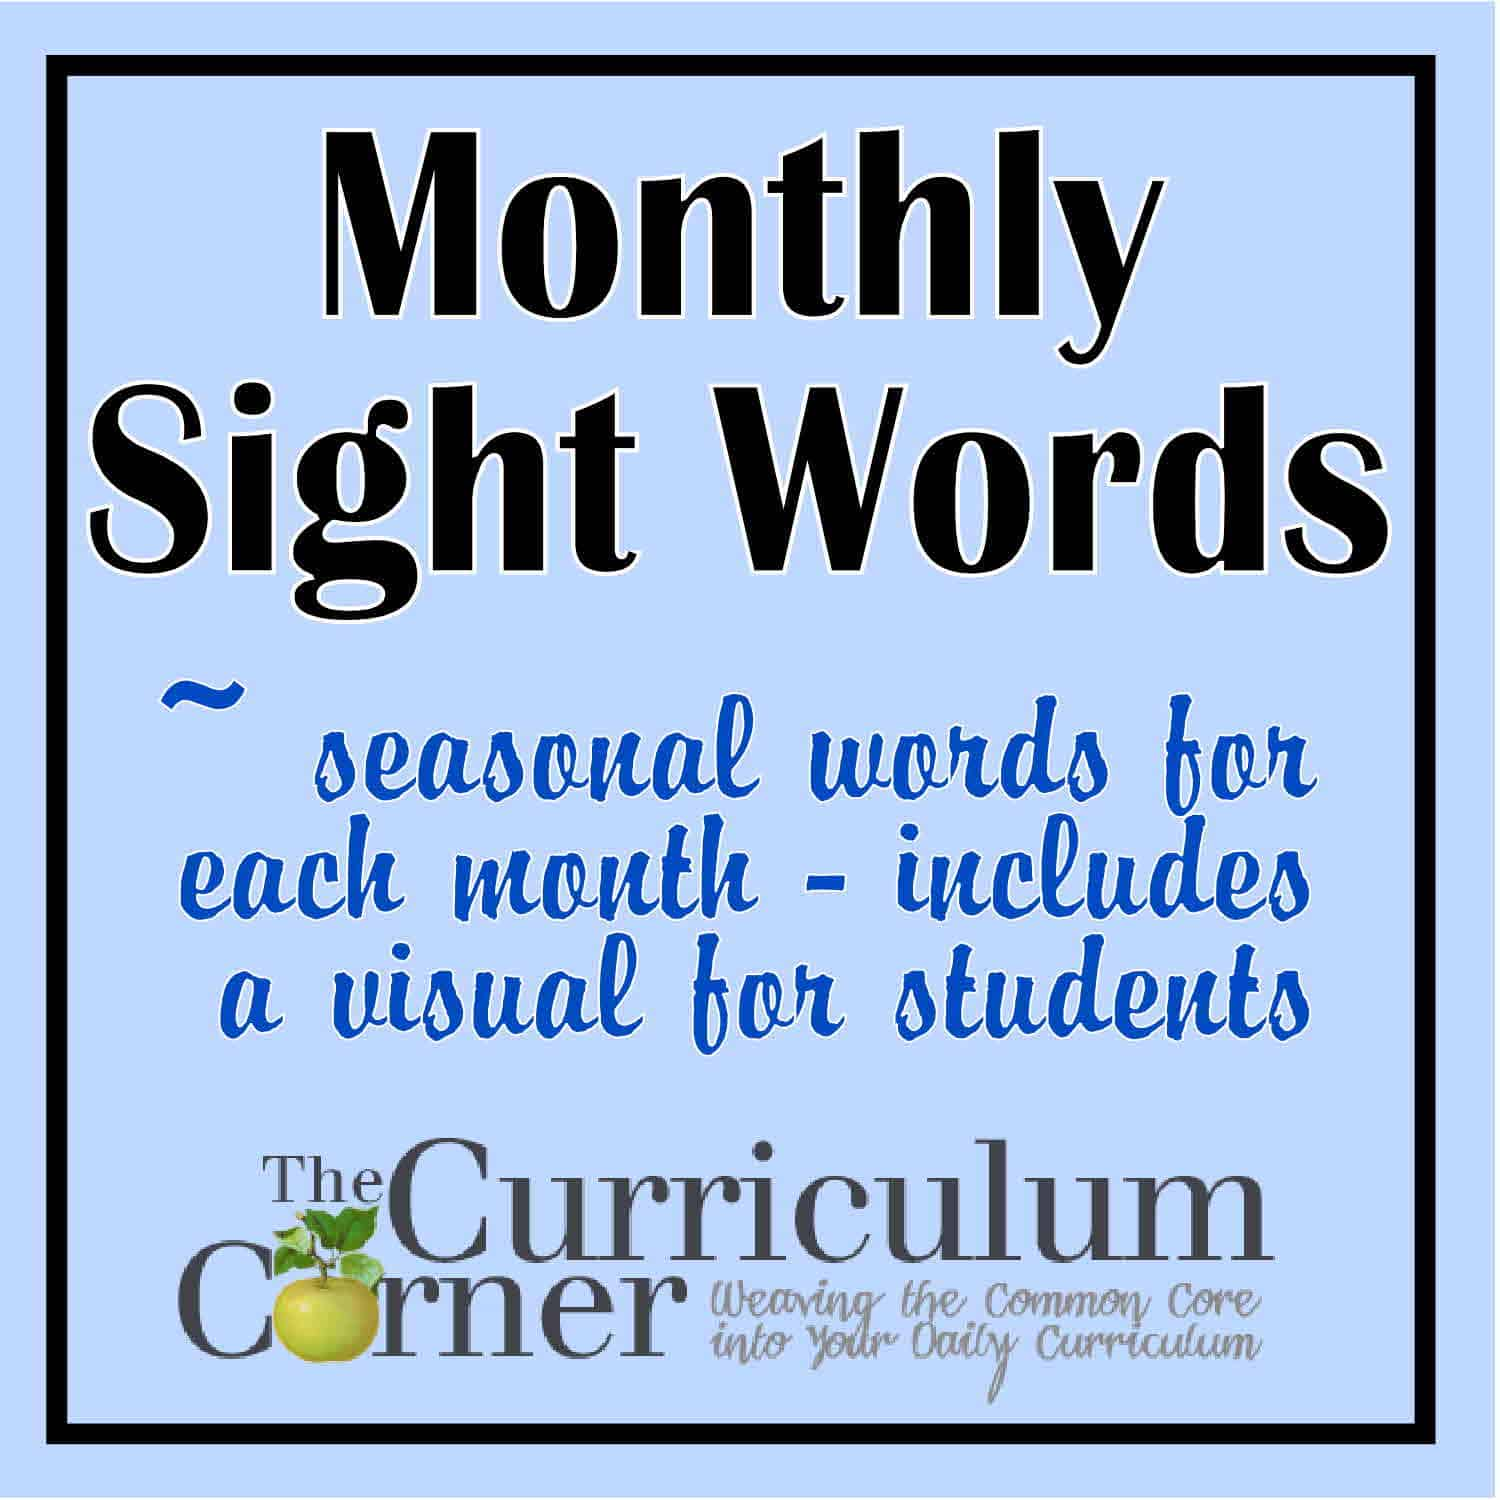 Monthly Sight Word Cards